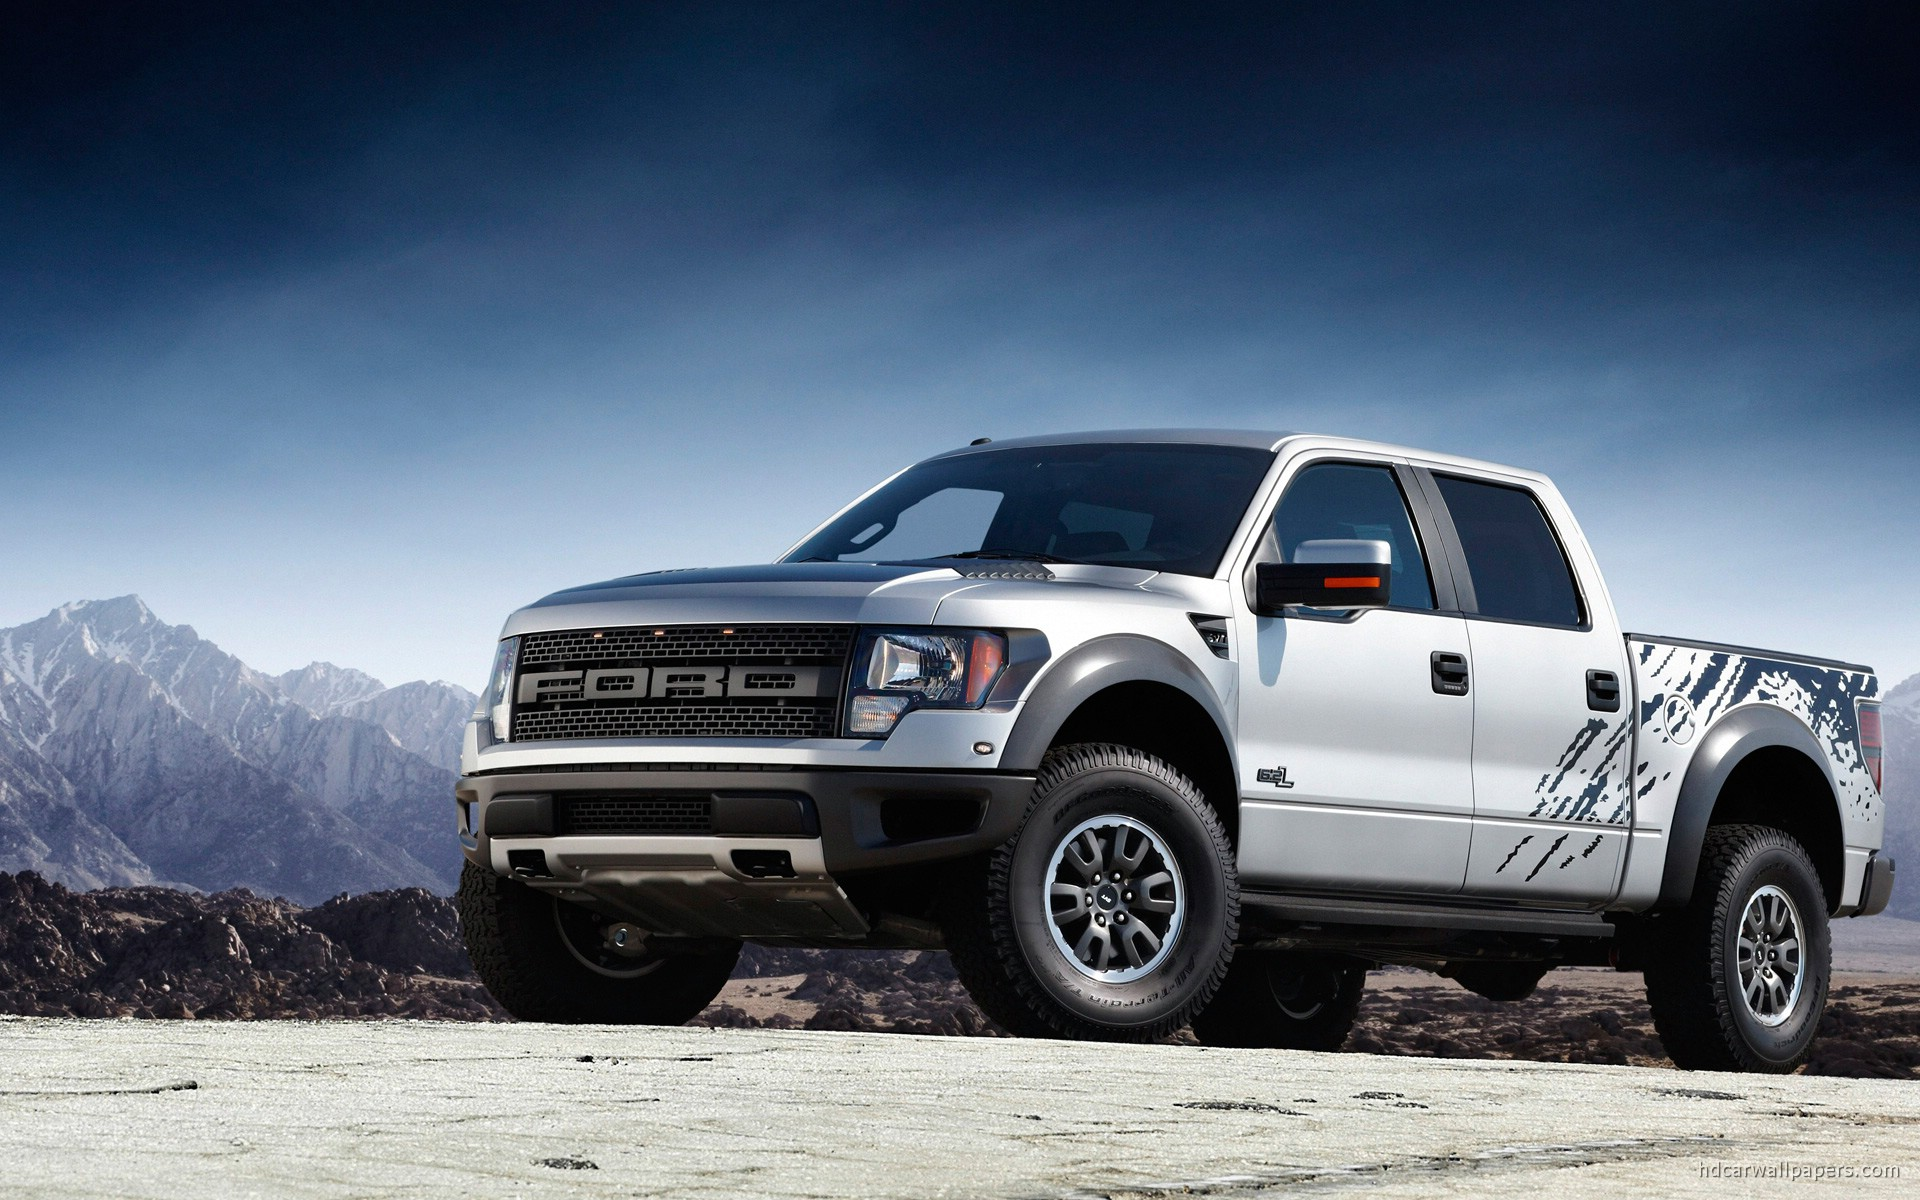 2011 ford f150 Raptor Wallpaper | HD Car Wallpapers